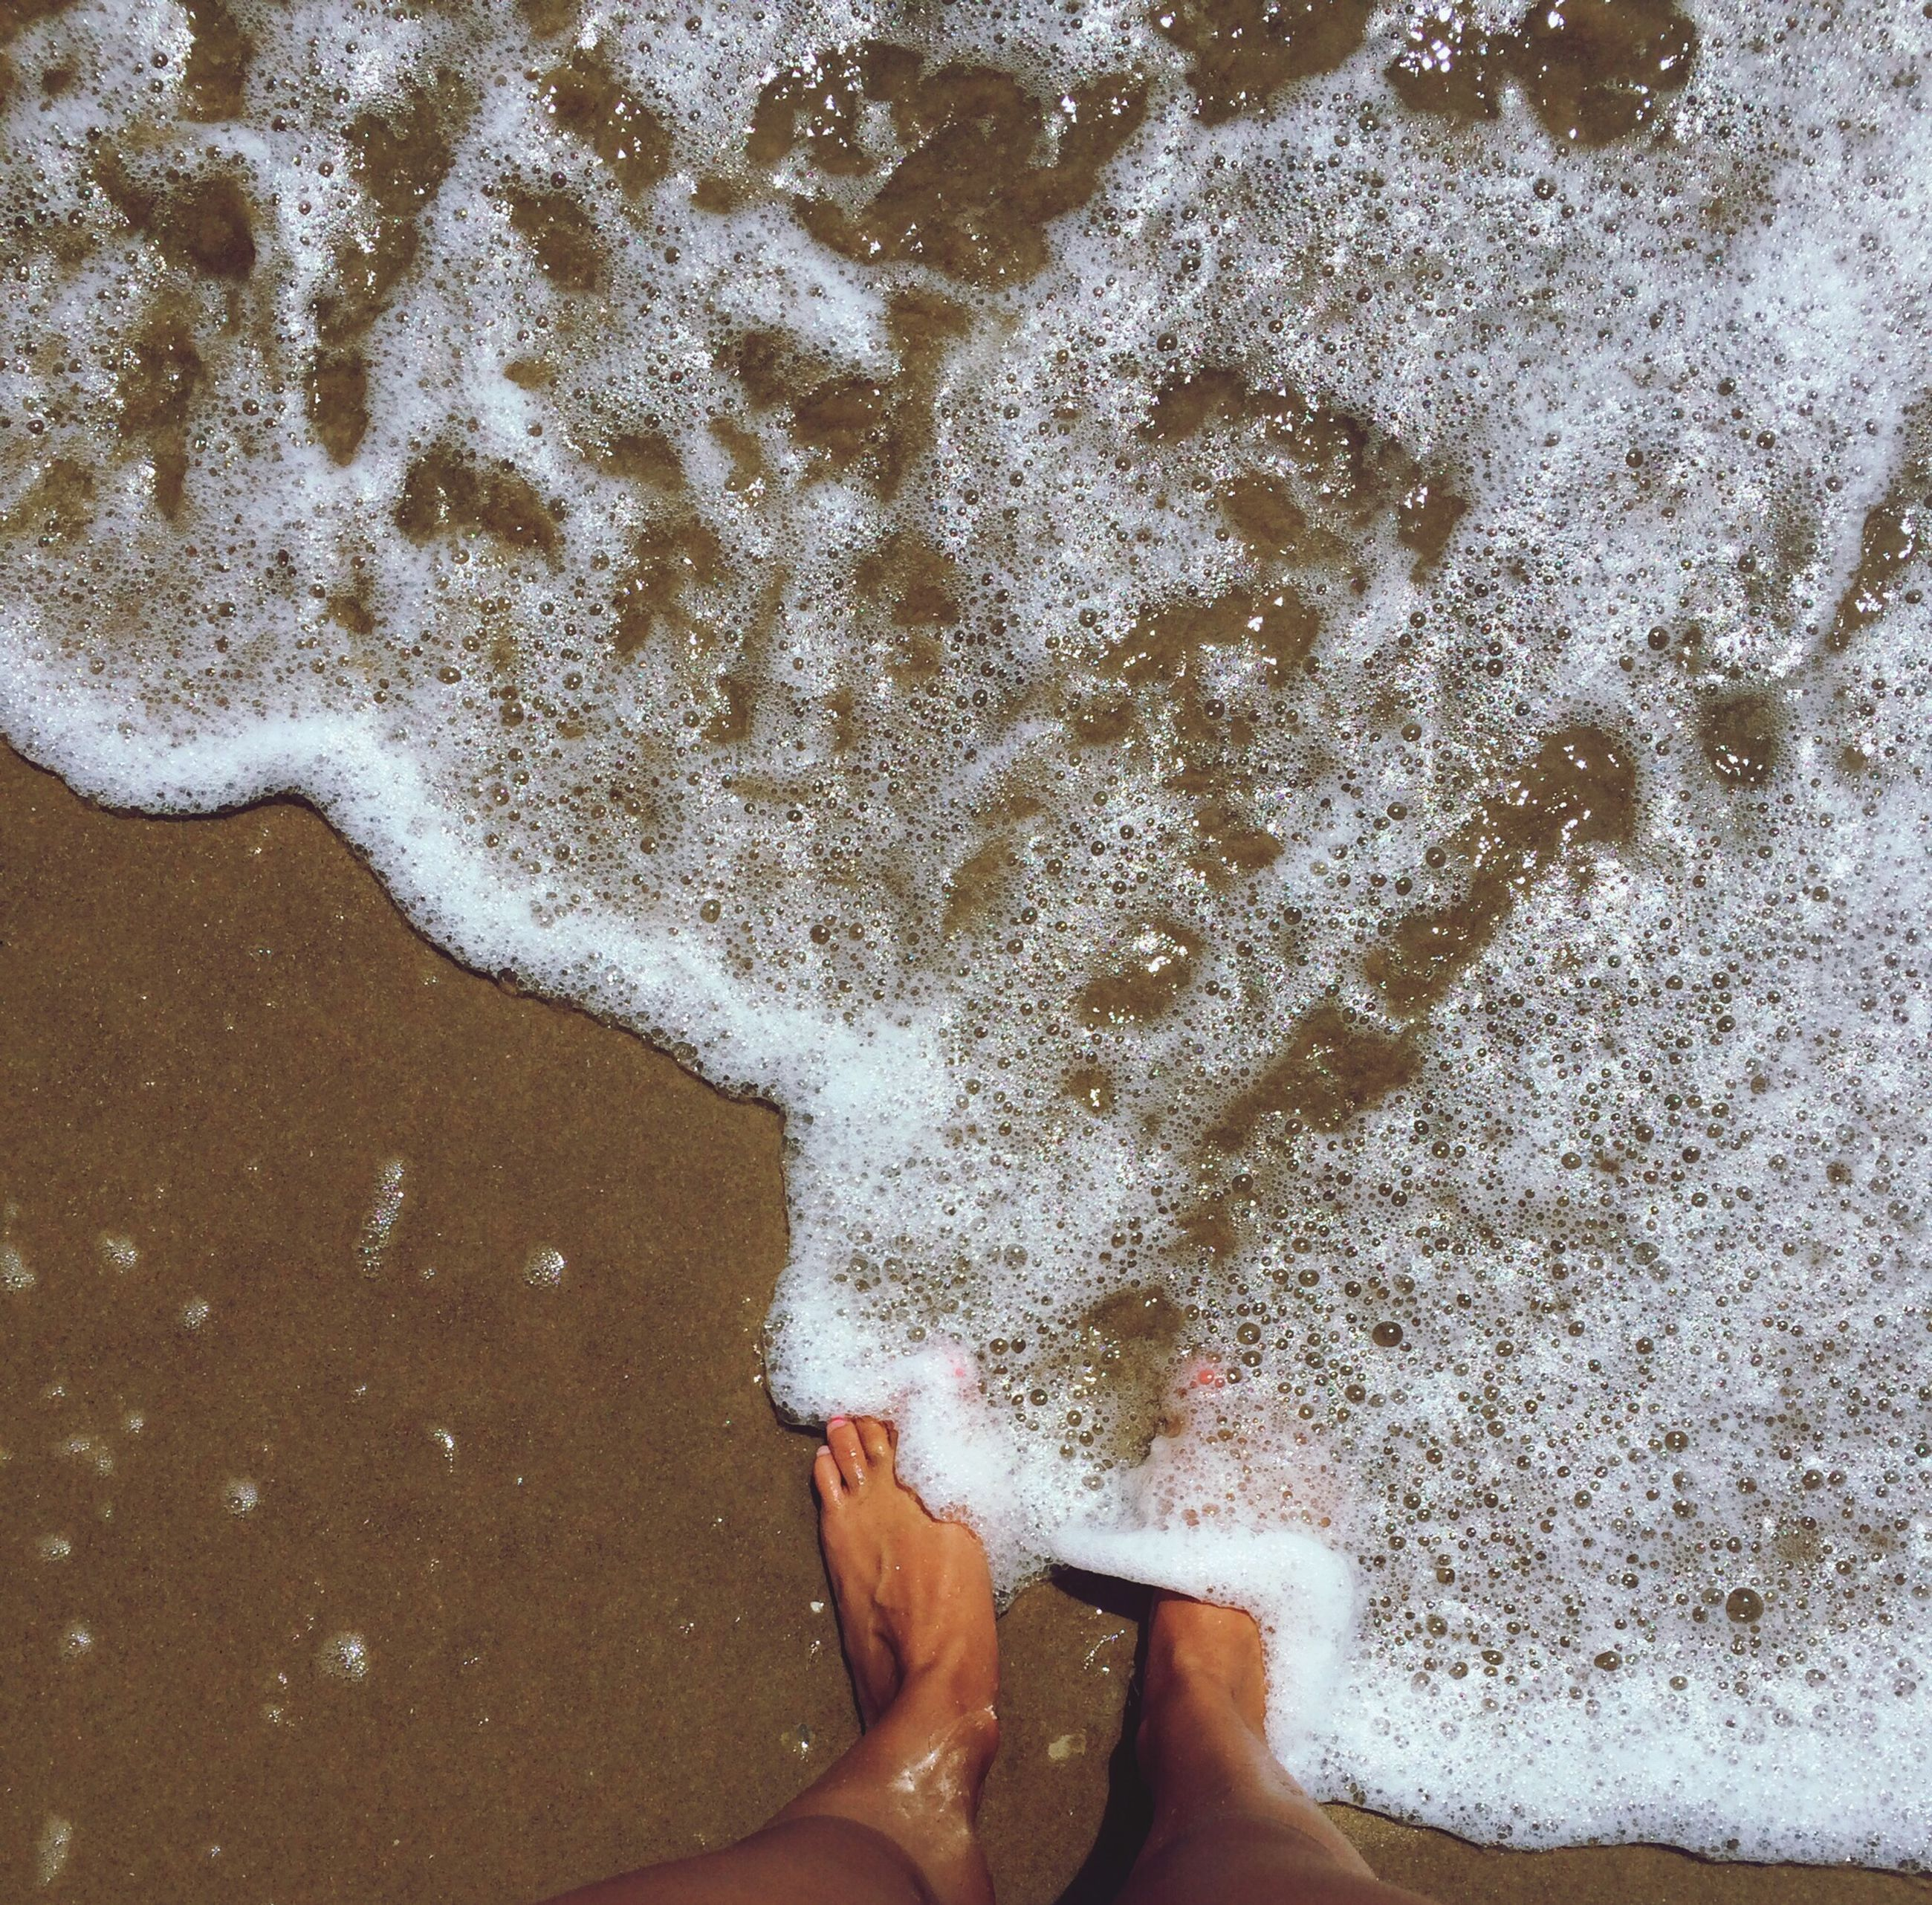 water, beach, surf, low section, person, sea, personal perspective, shore, sand, barefoot, wave, human foot, high angle view, motion, lifestyles, leisure activity, wet